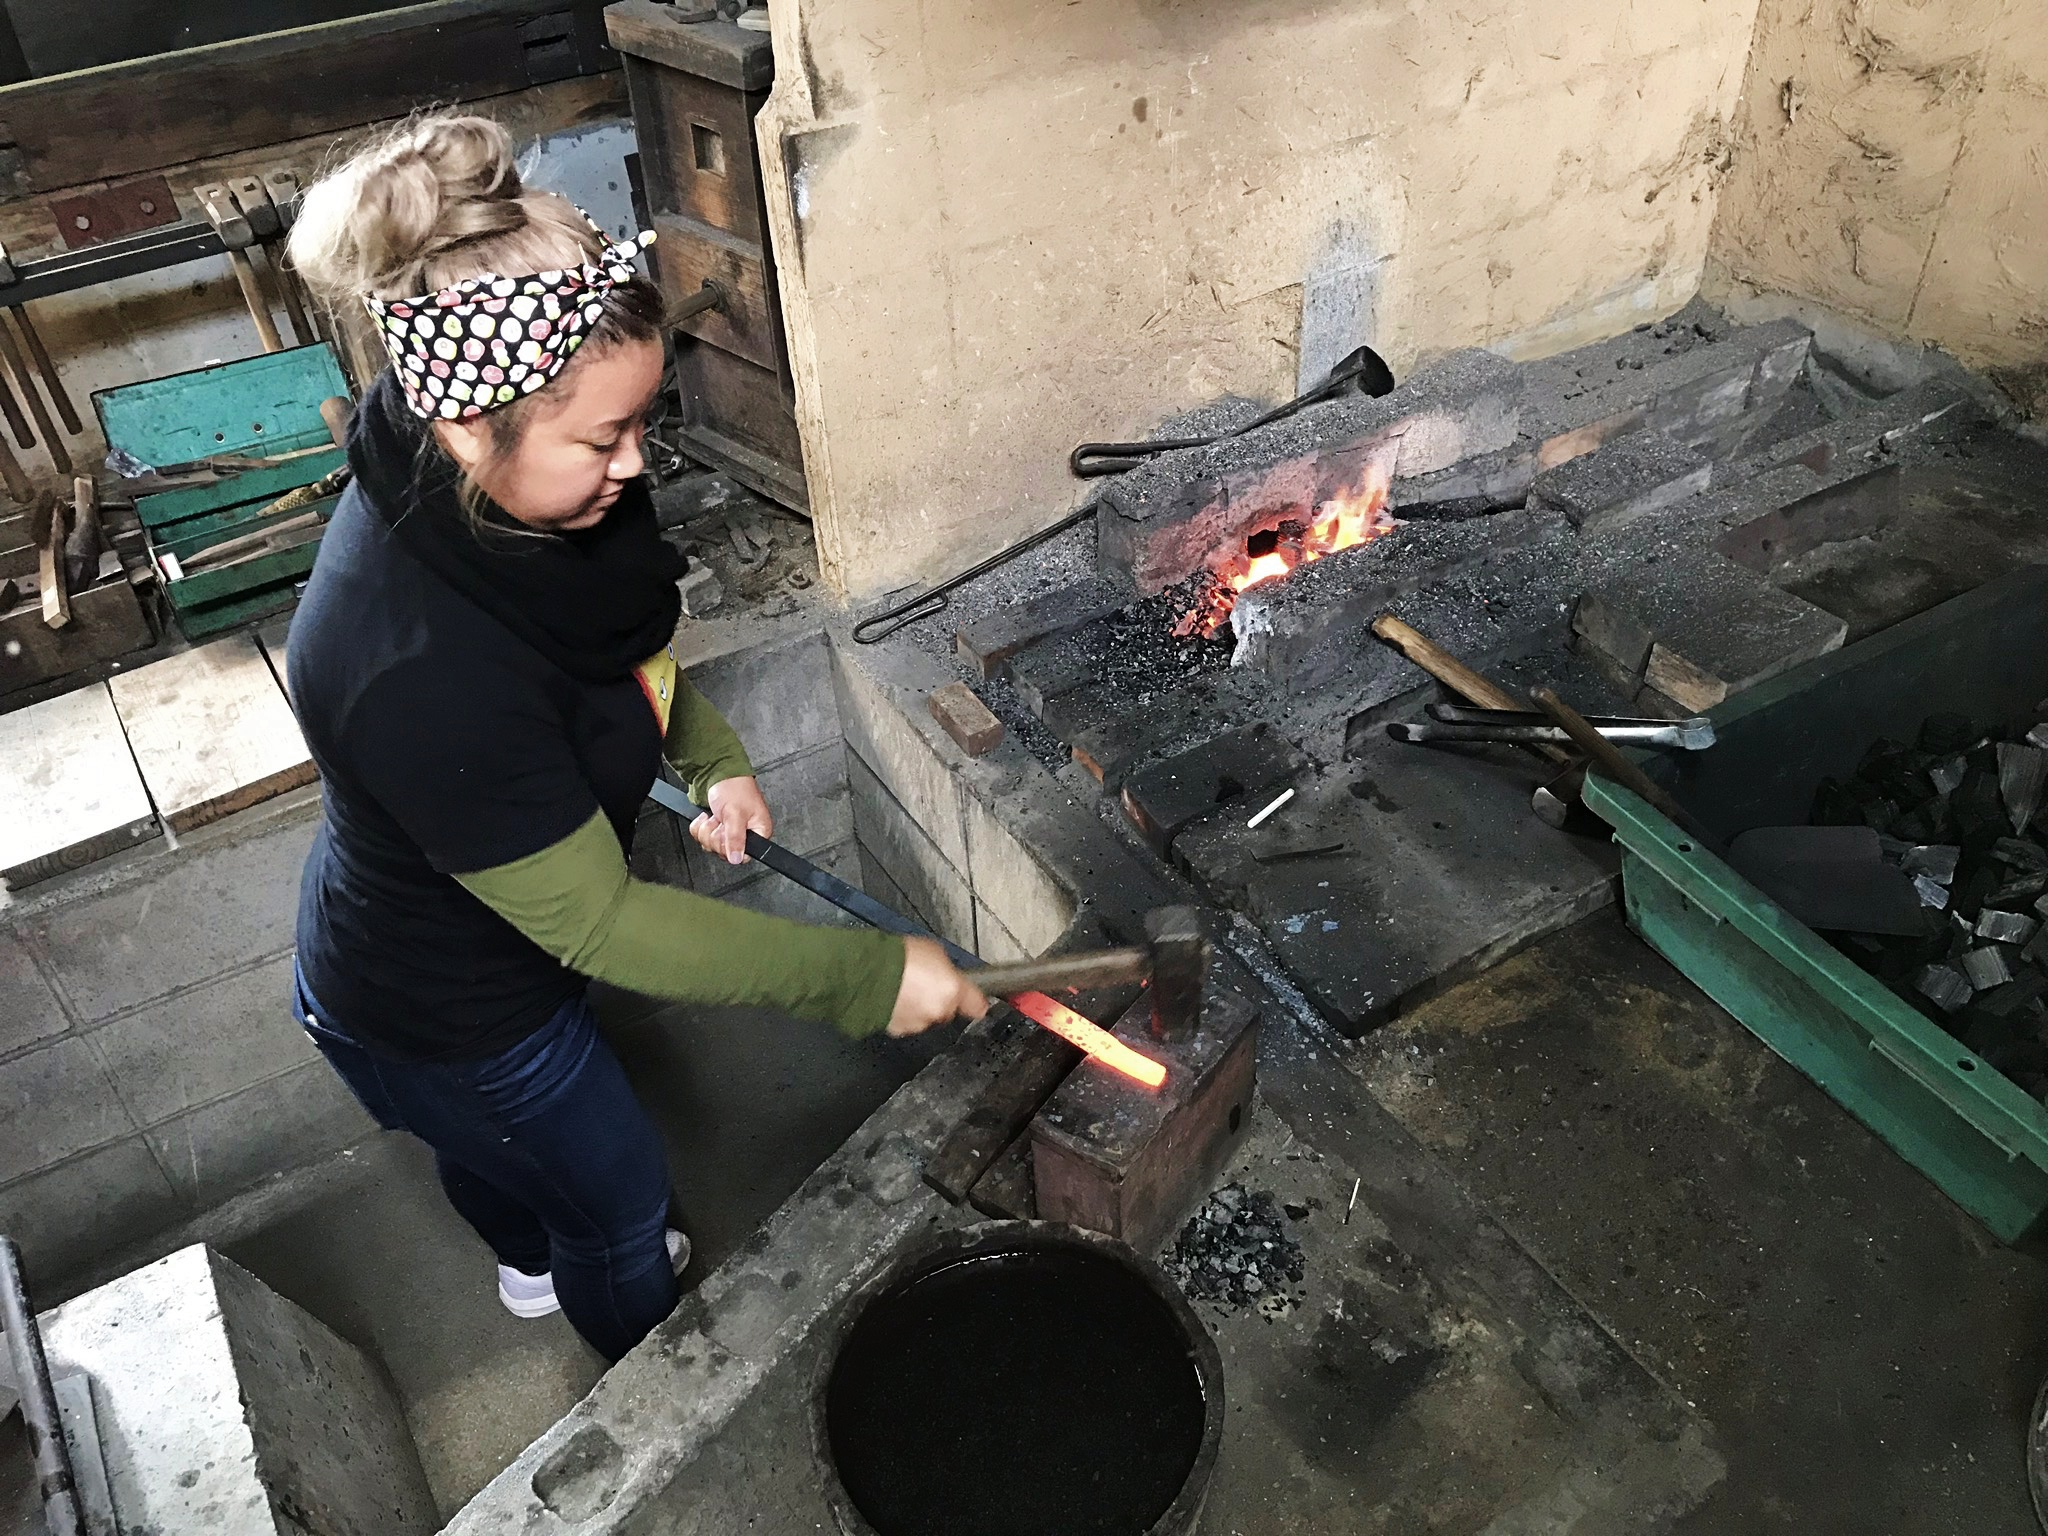 Young woman wearing long sleeves hammers a heated length of metal against an anvil with a stone forge in the background. Her hair is in a bun with a japanese cotton print scarf tied around her head.